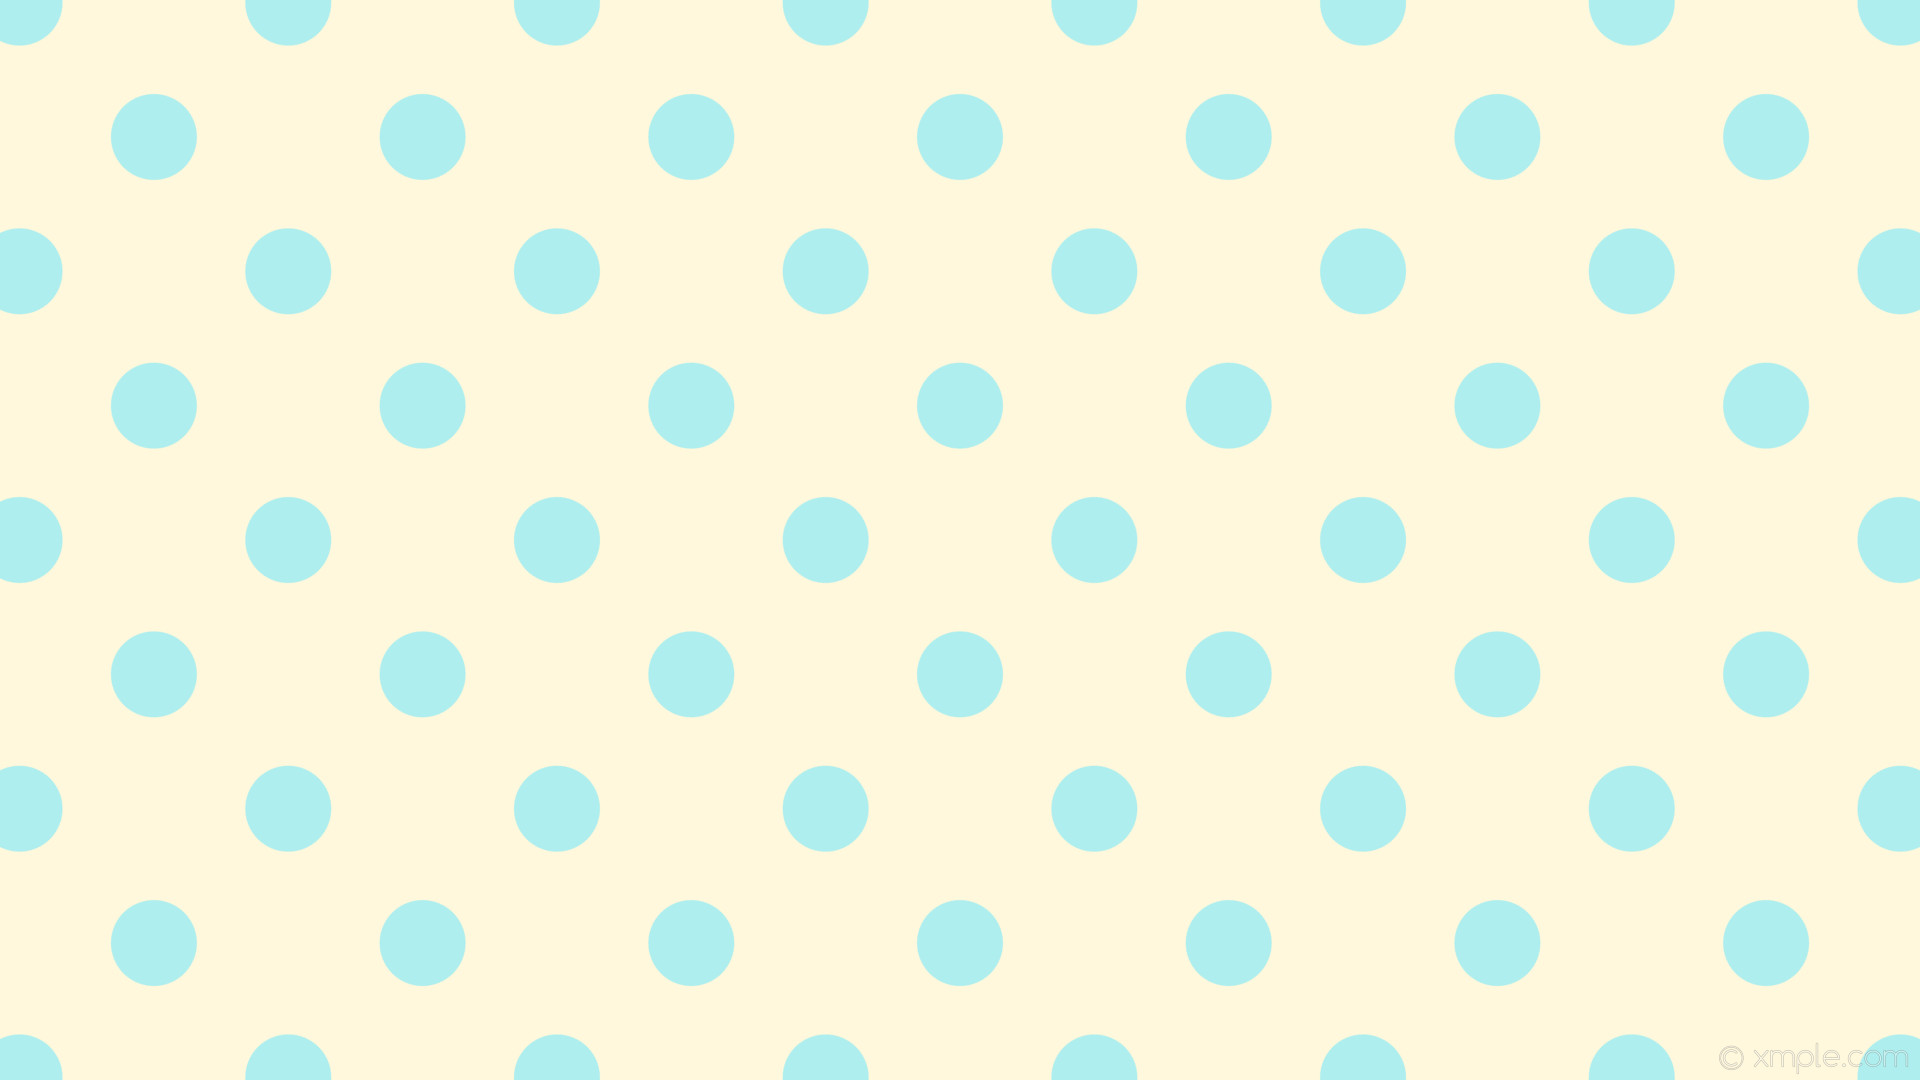 wallpaper spots blue brown polka dots cornsilk pale turquoise #fff8dc  #afeeee 315° 86px